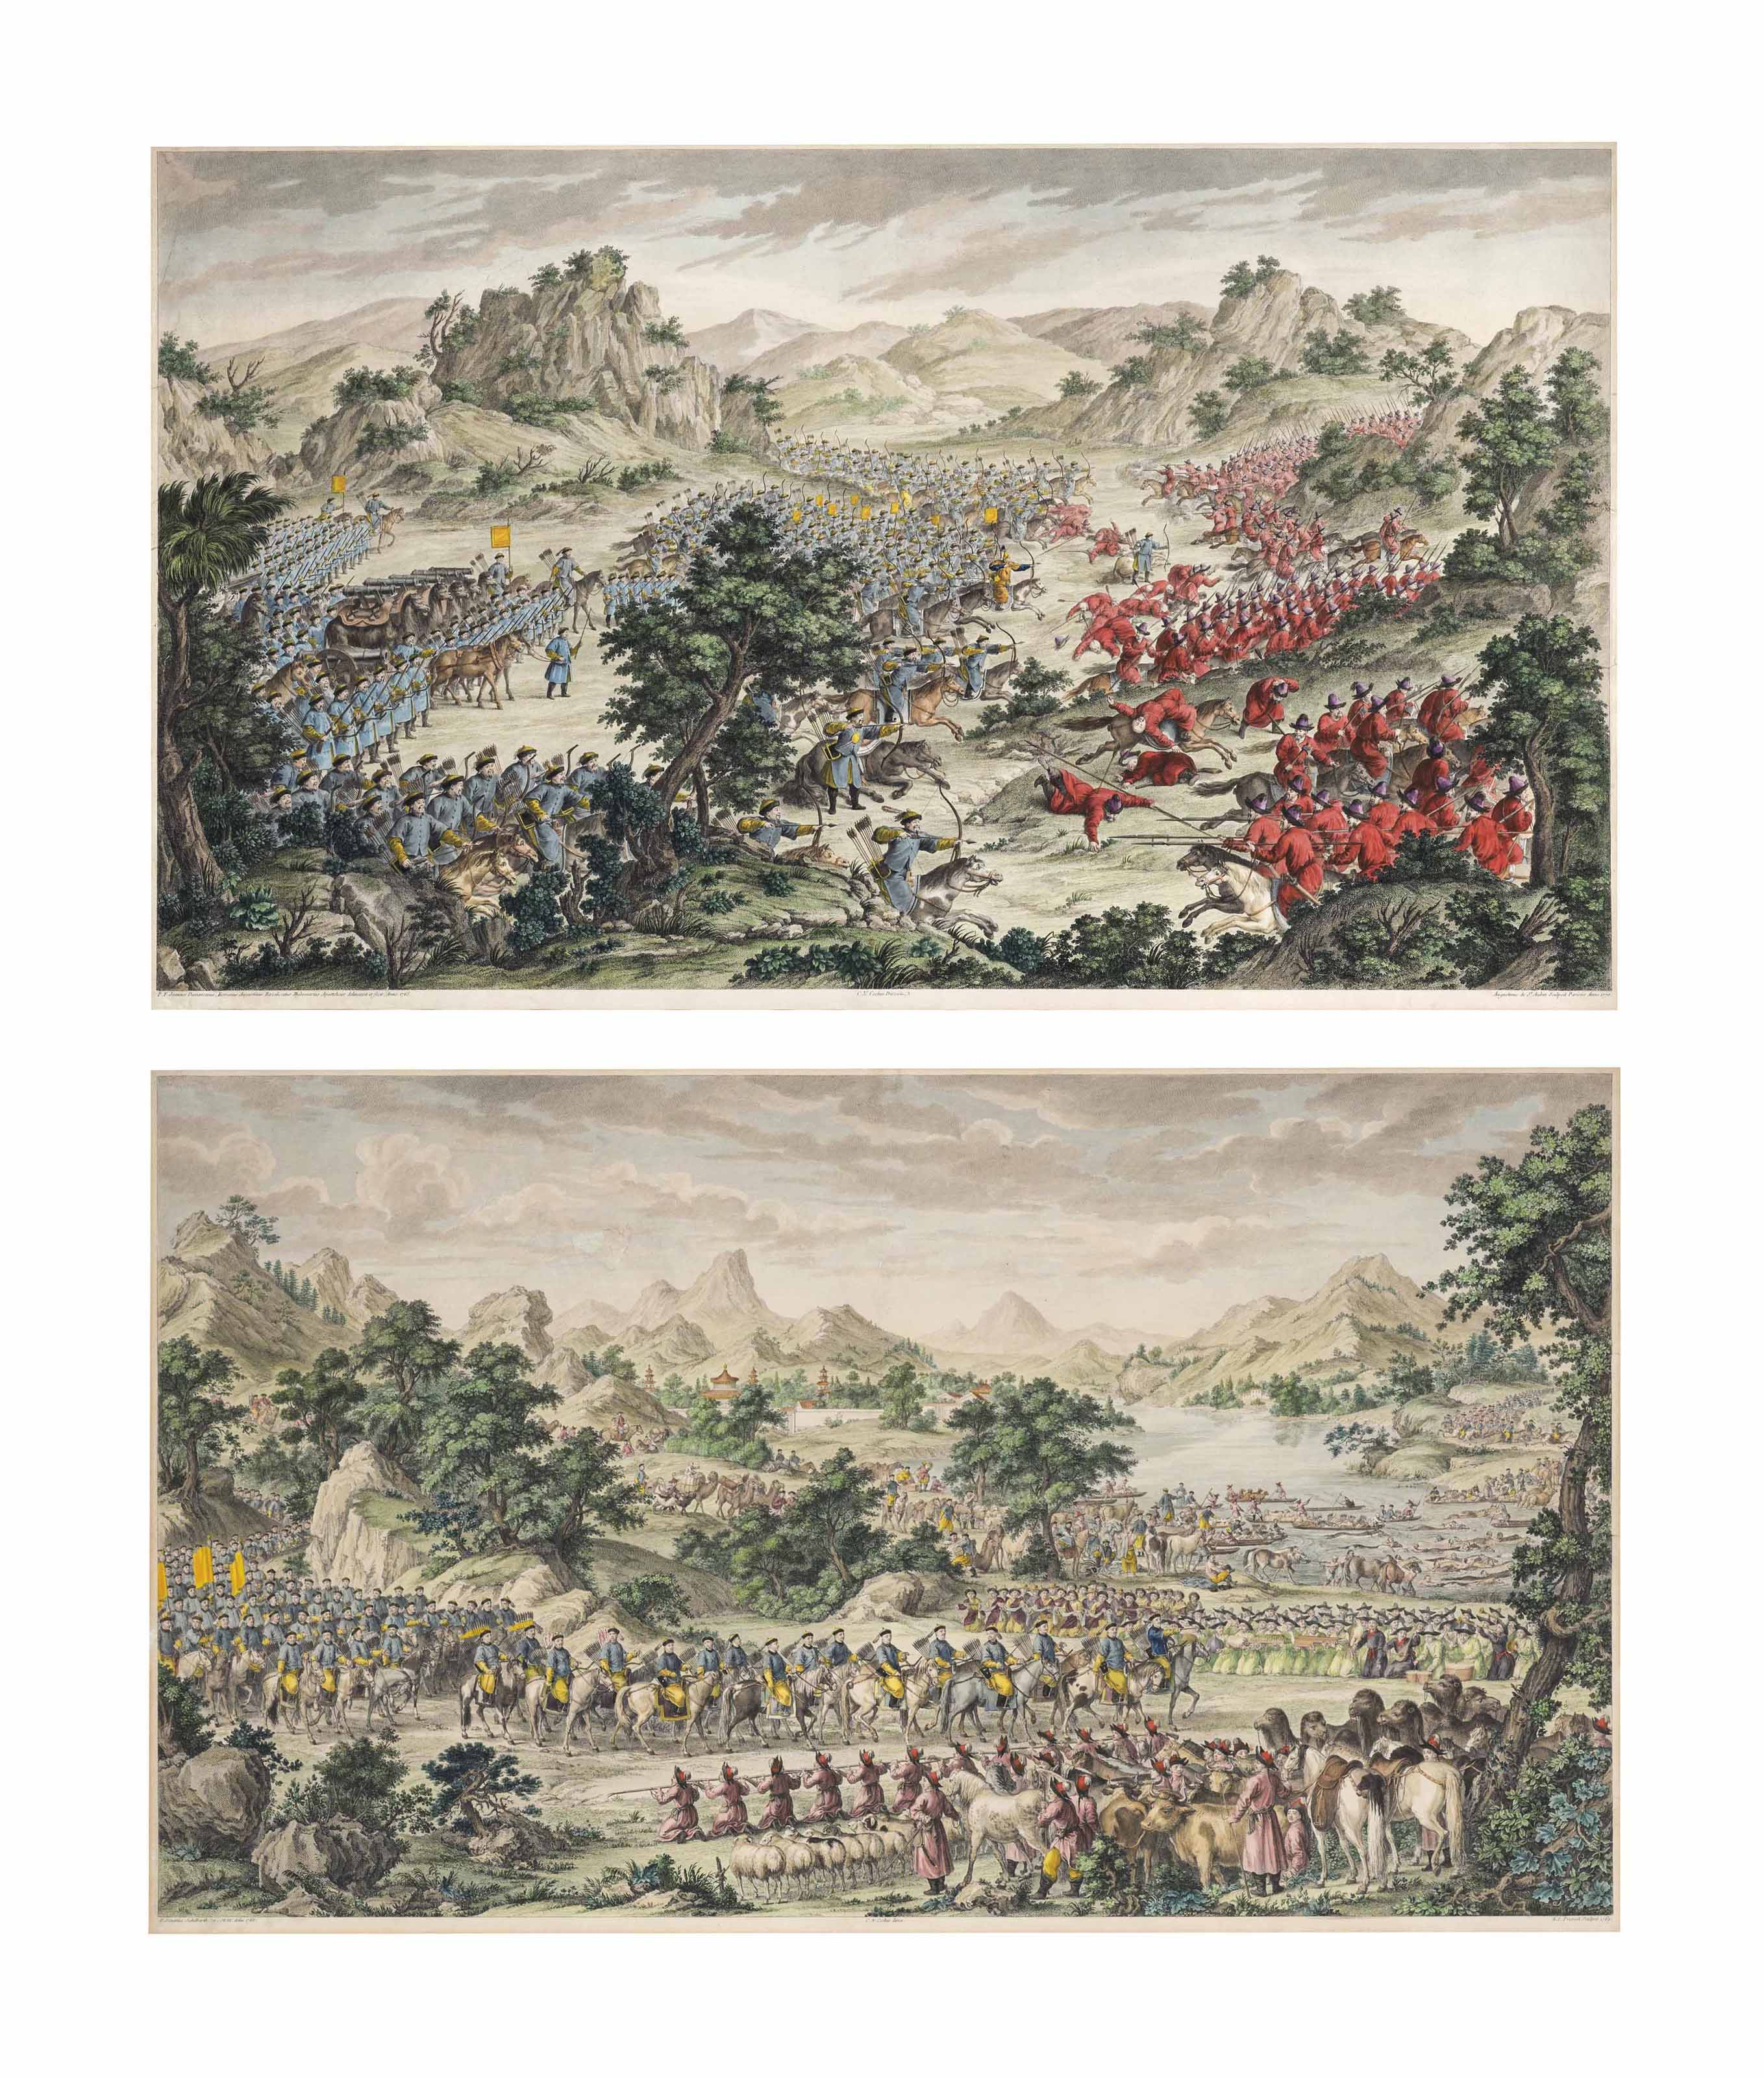 TWO COPPER-PLATE ENGRAVINGS OF EMPEROR QIANLONG'S CONQUEST